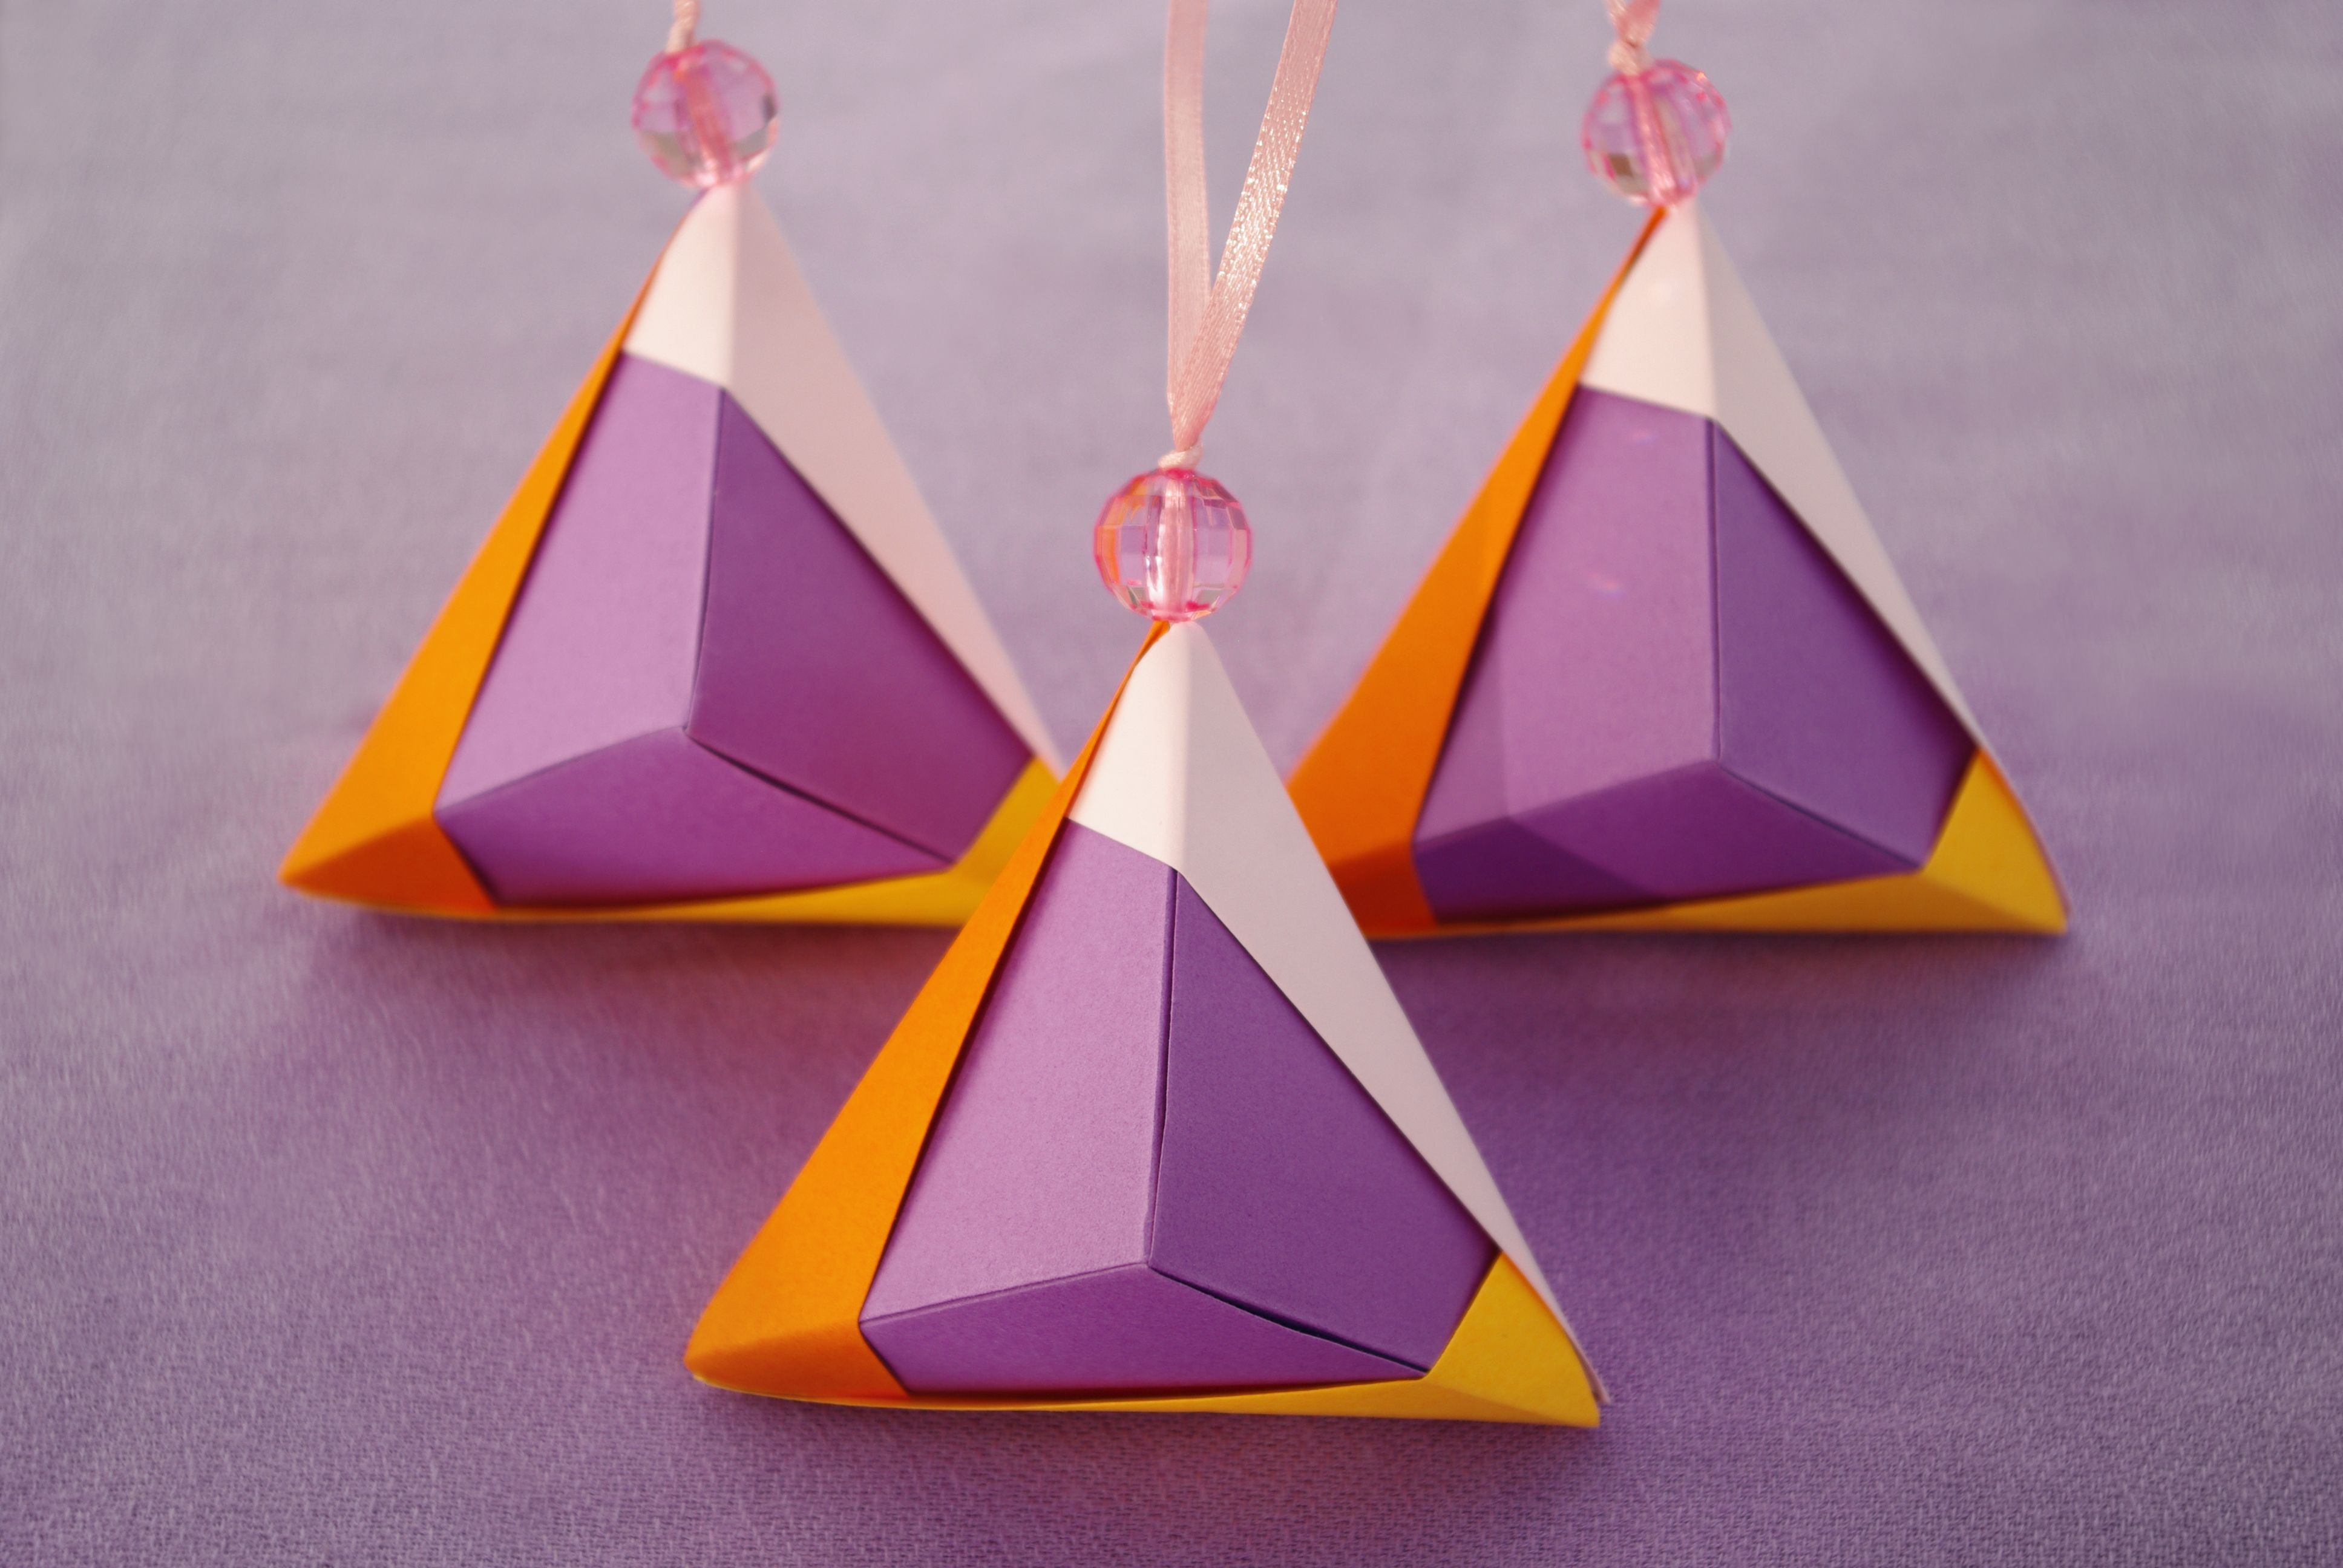 Set of 3 Christmas ornaments.  Purple Origami pyramids by WaveofLight on Etsy, $15.00  https://www.etsy.com/listing/167570548/set-3-christmas-ornaments-purple-origami